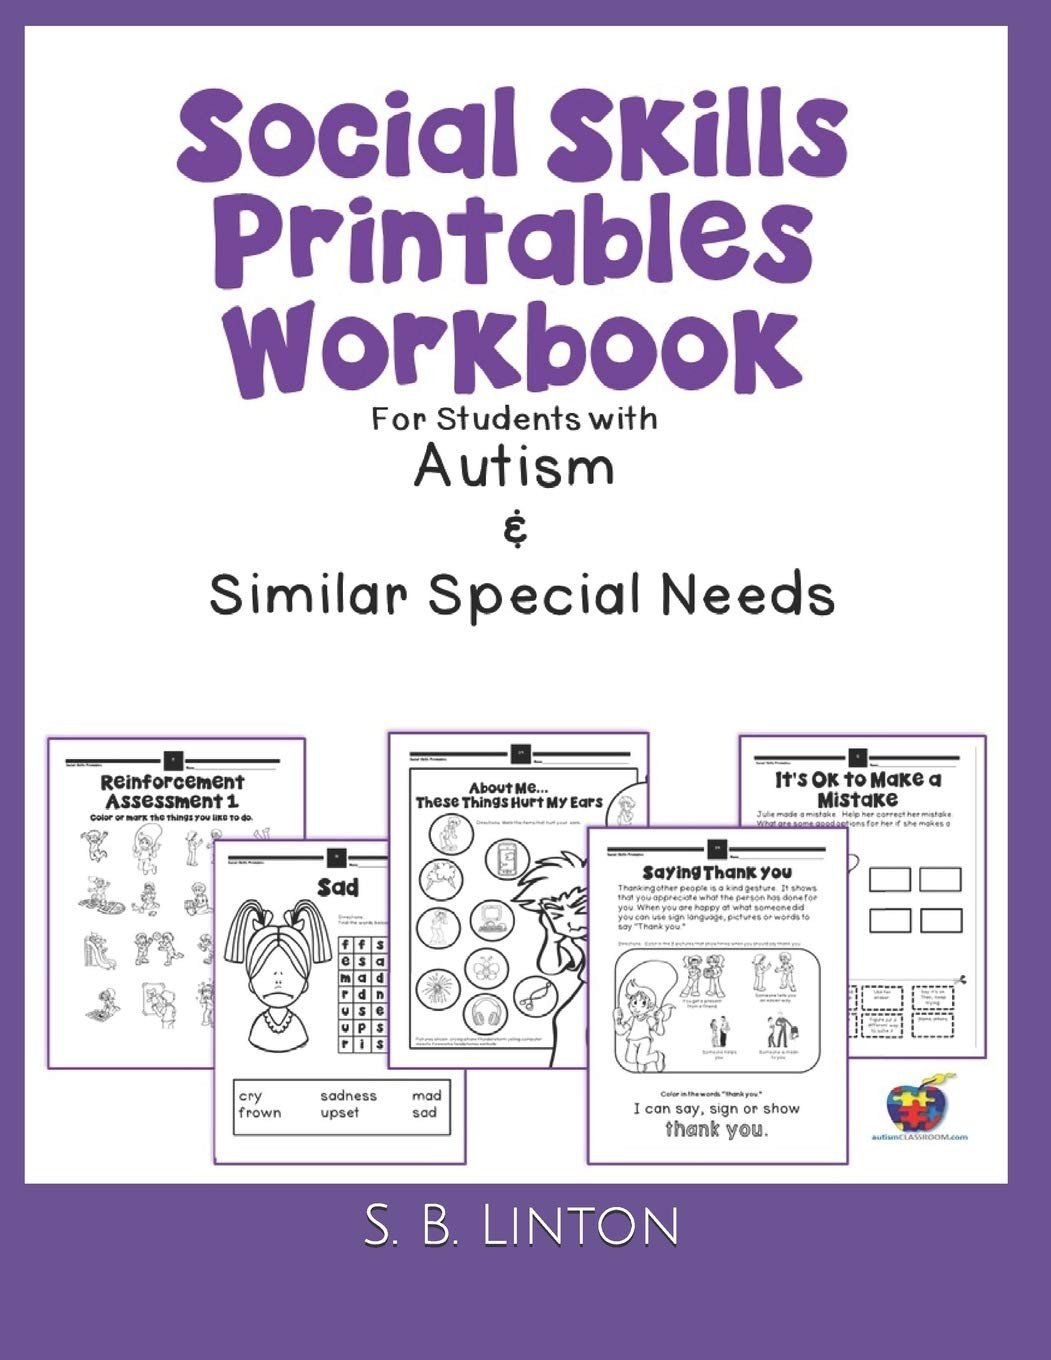 Social Skills Printables Workbook For Students with Autism